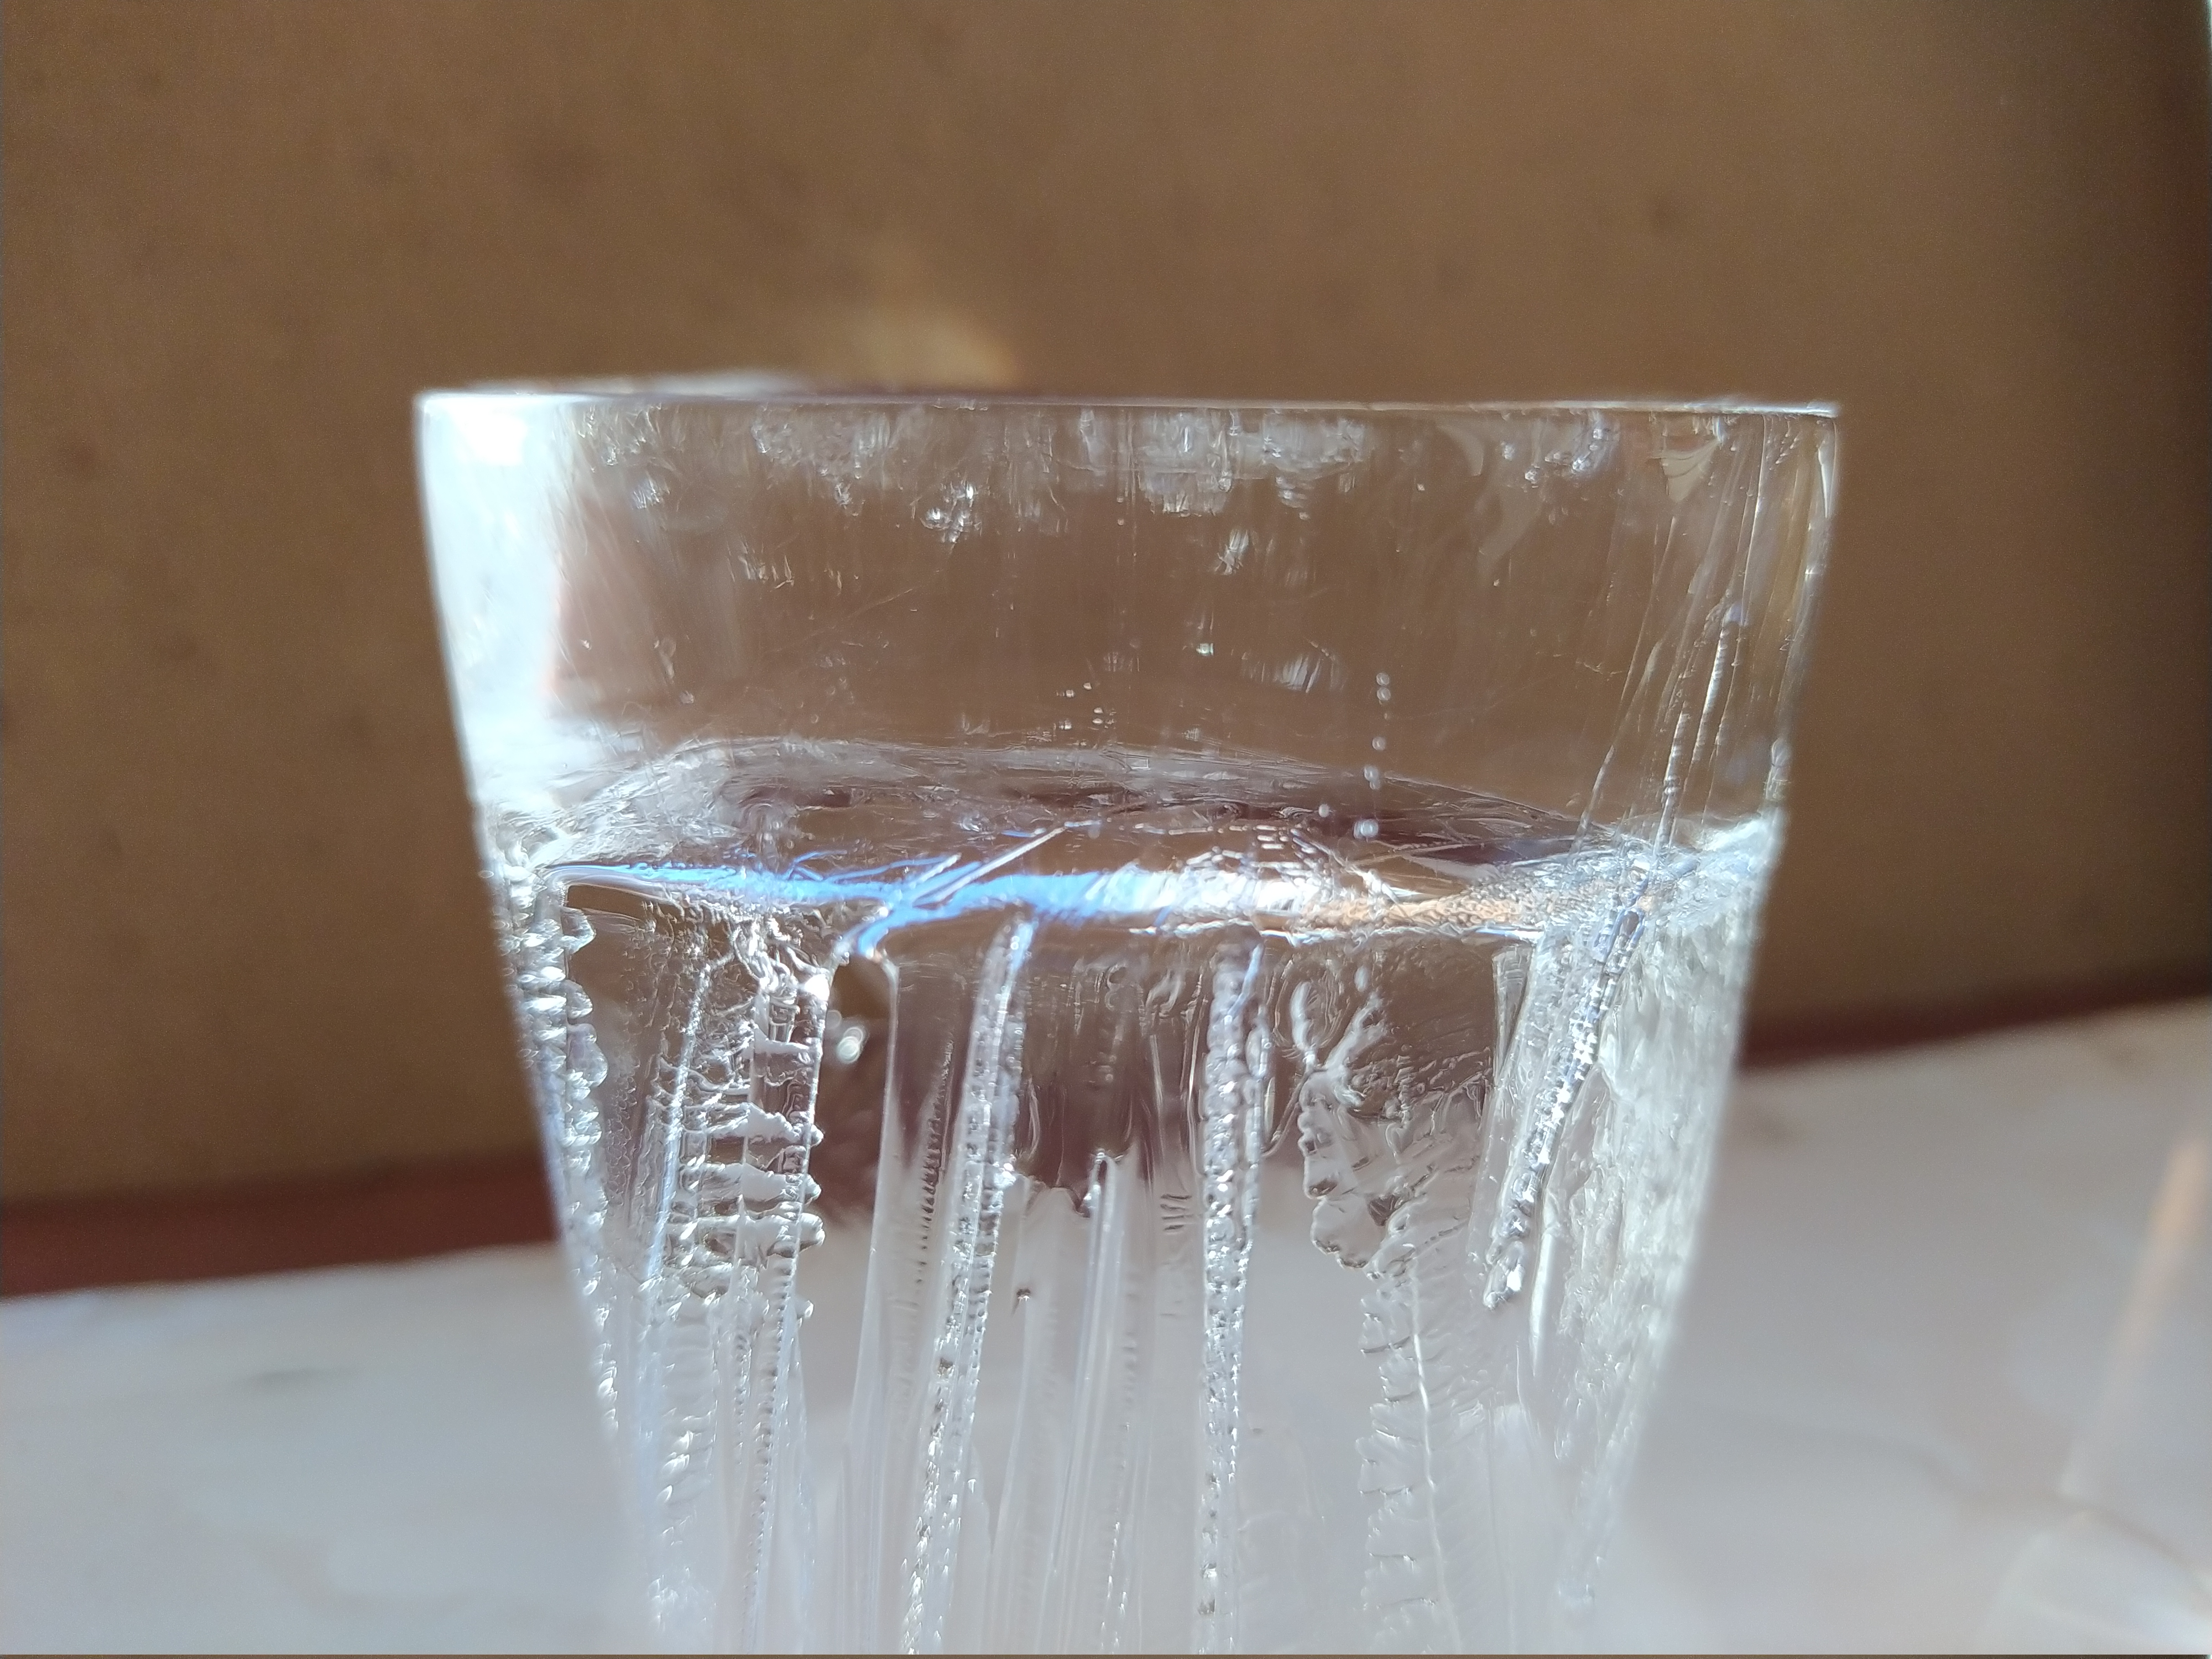 Clear ice made from my ice tray